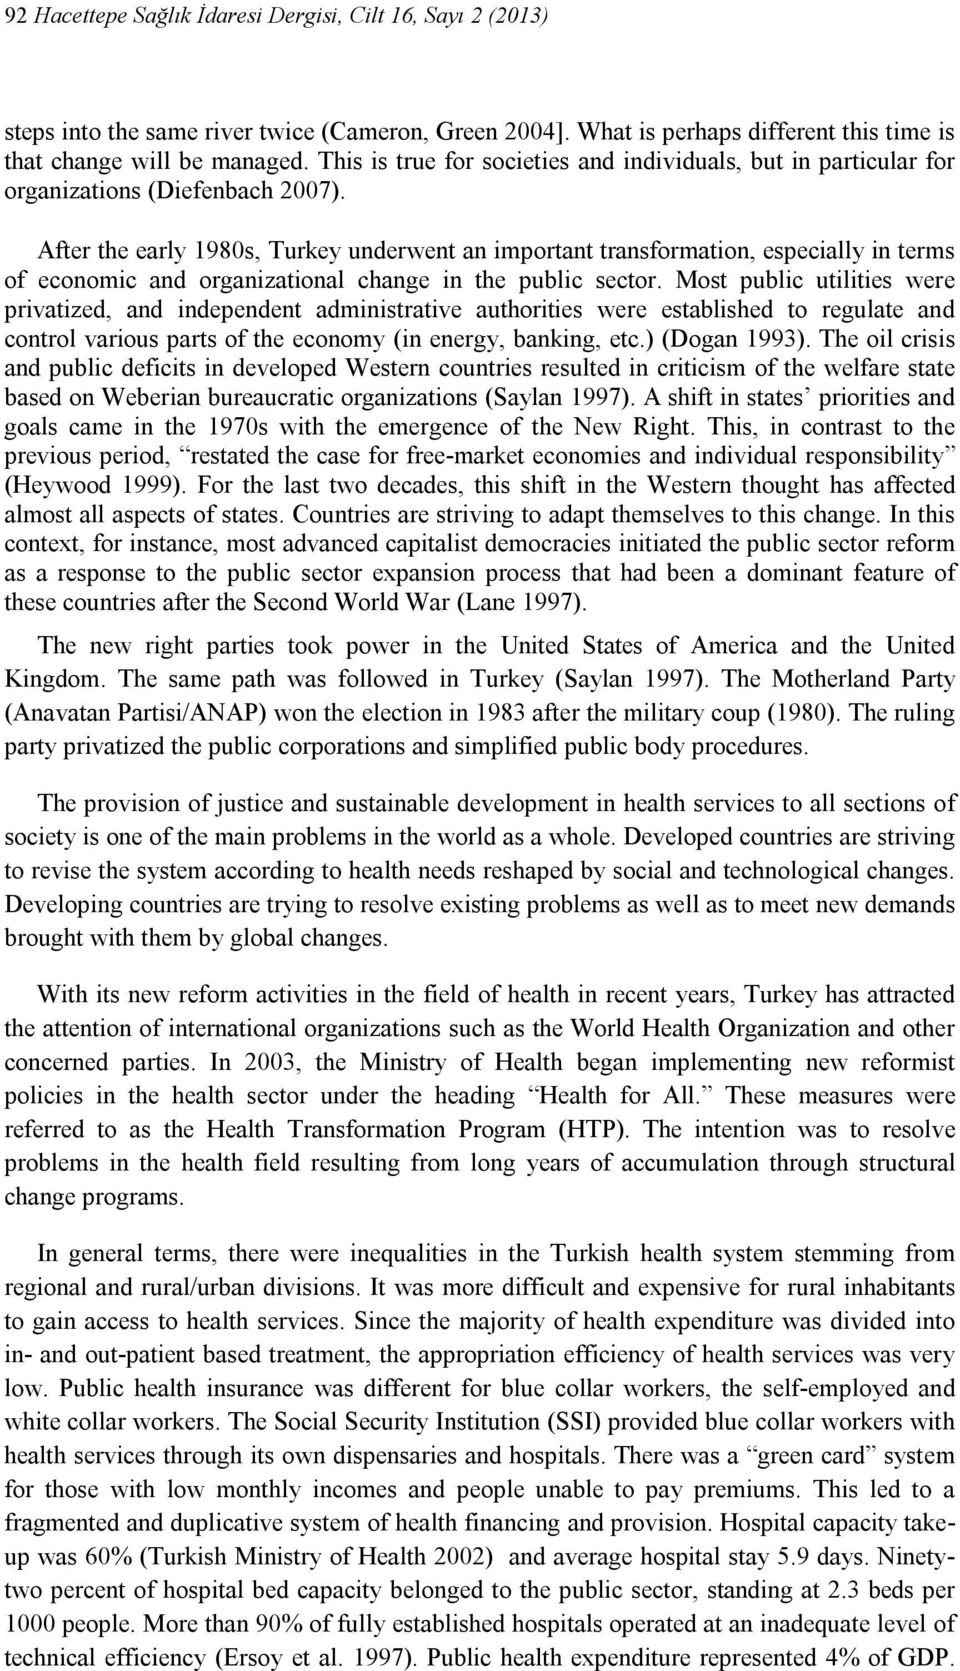 After the early 1980s, Turkey underwent an important transformation, especially in terms of economic and organizational change in the public sector.